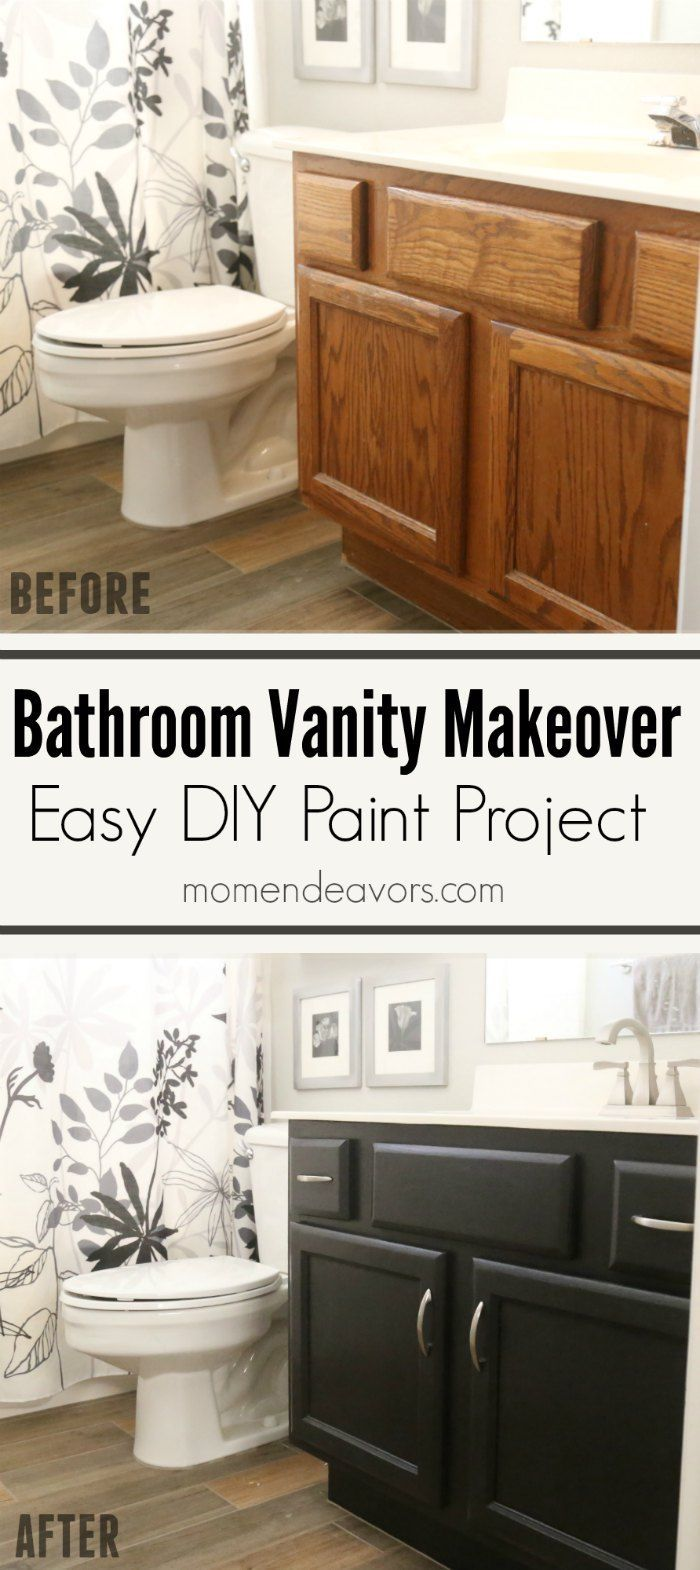 easy bathroom vanity makeover easy diy home paint project paint suggestions and easy diy tutorial for painting bathroom cabinets black